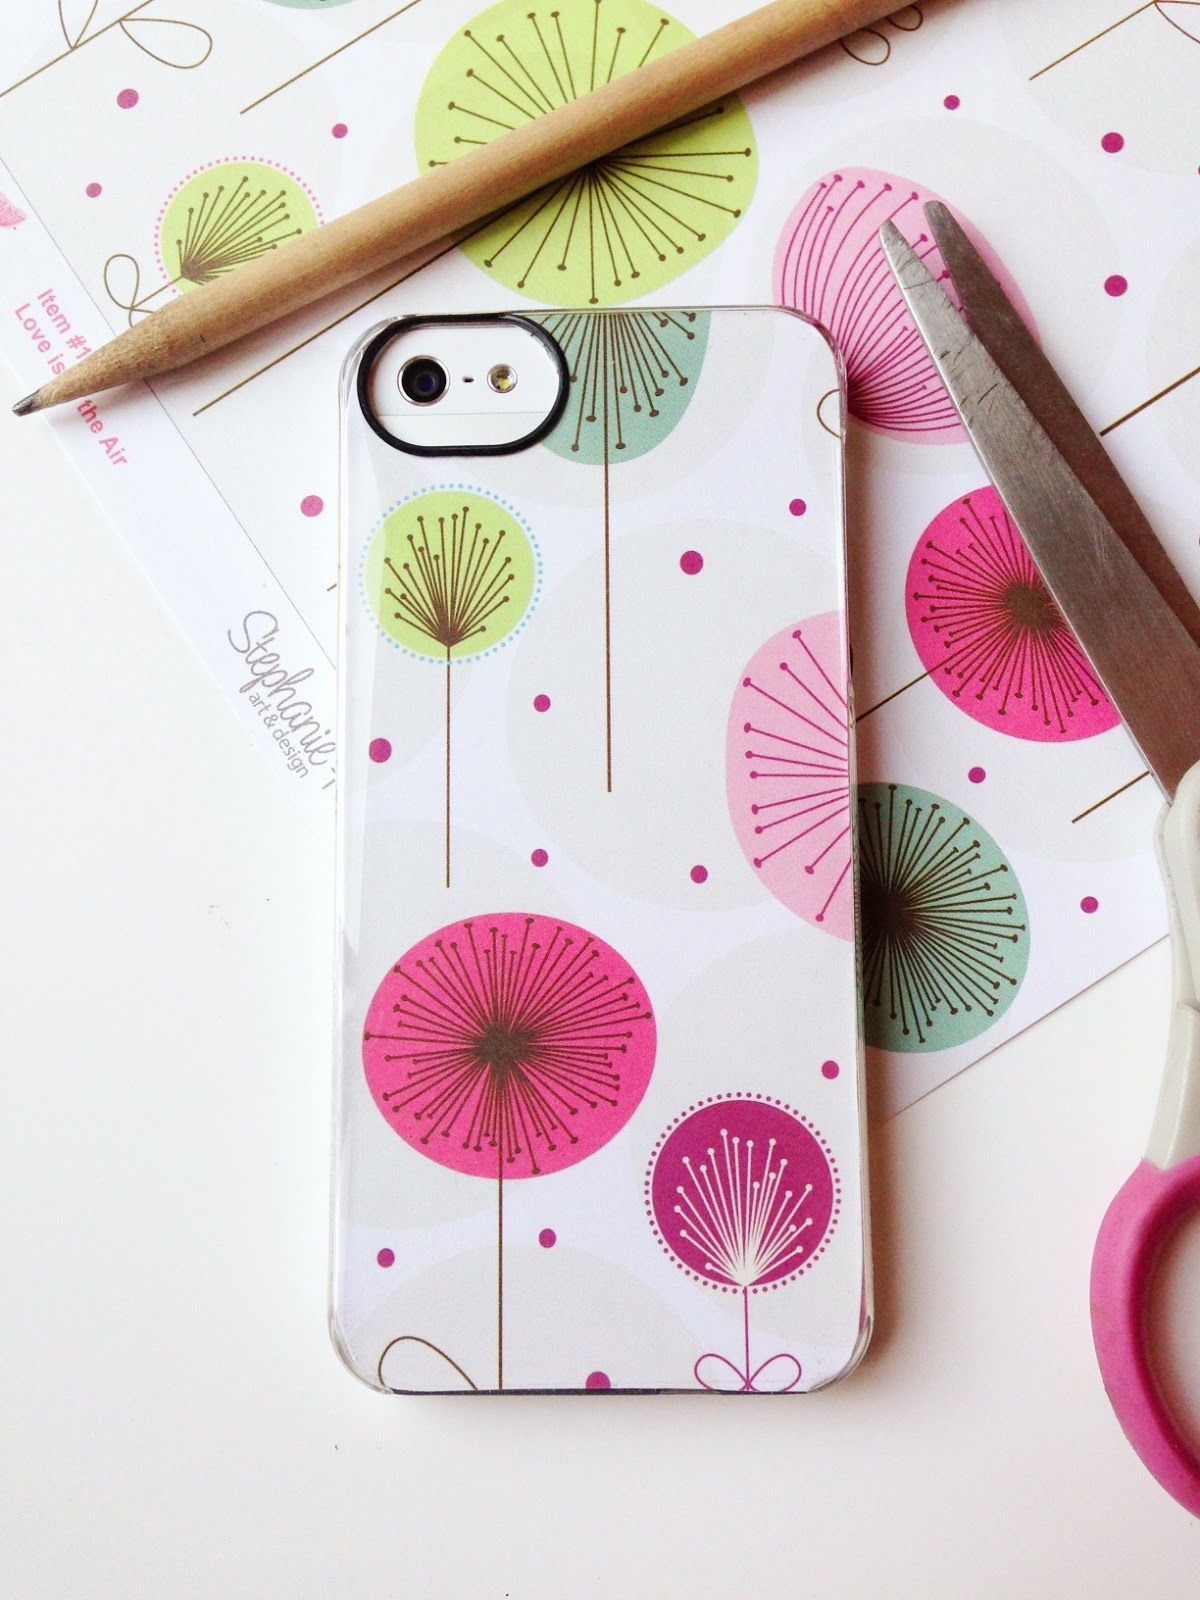 Easy Way To Personalize Your Iphone Cover Diy Phone Case Diy